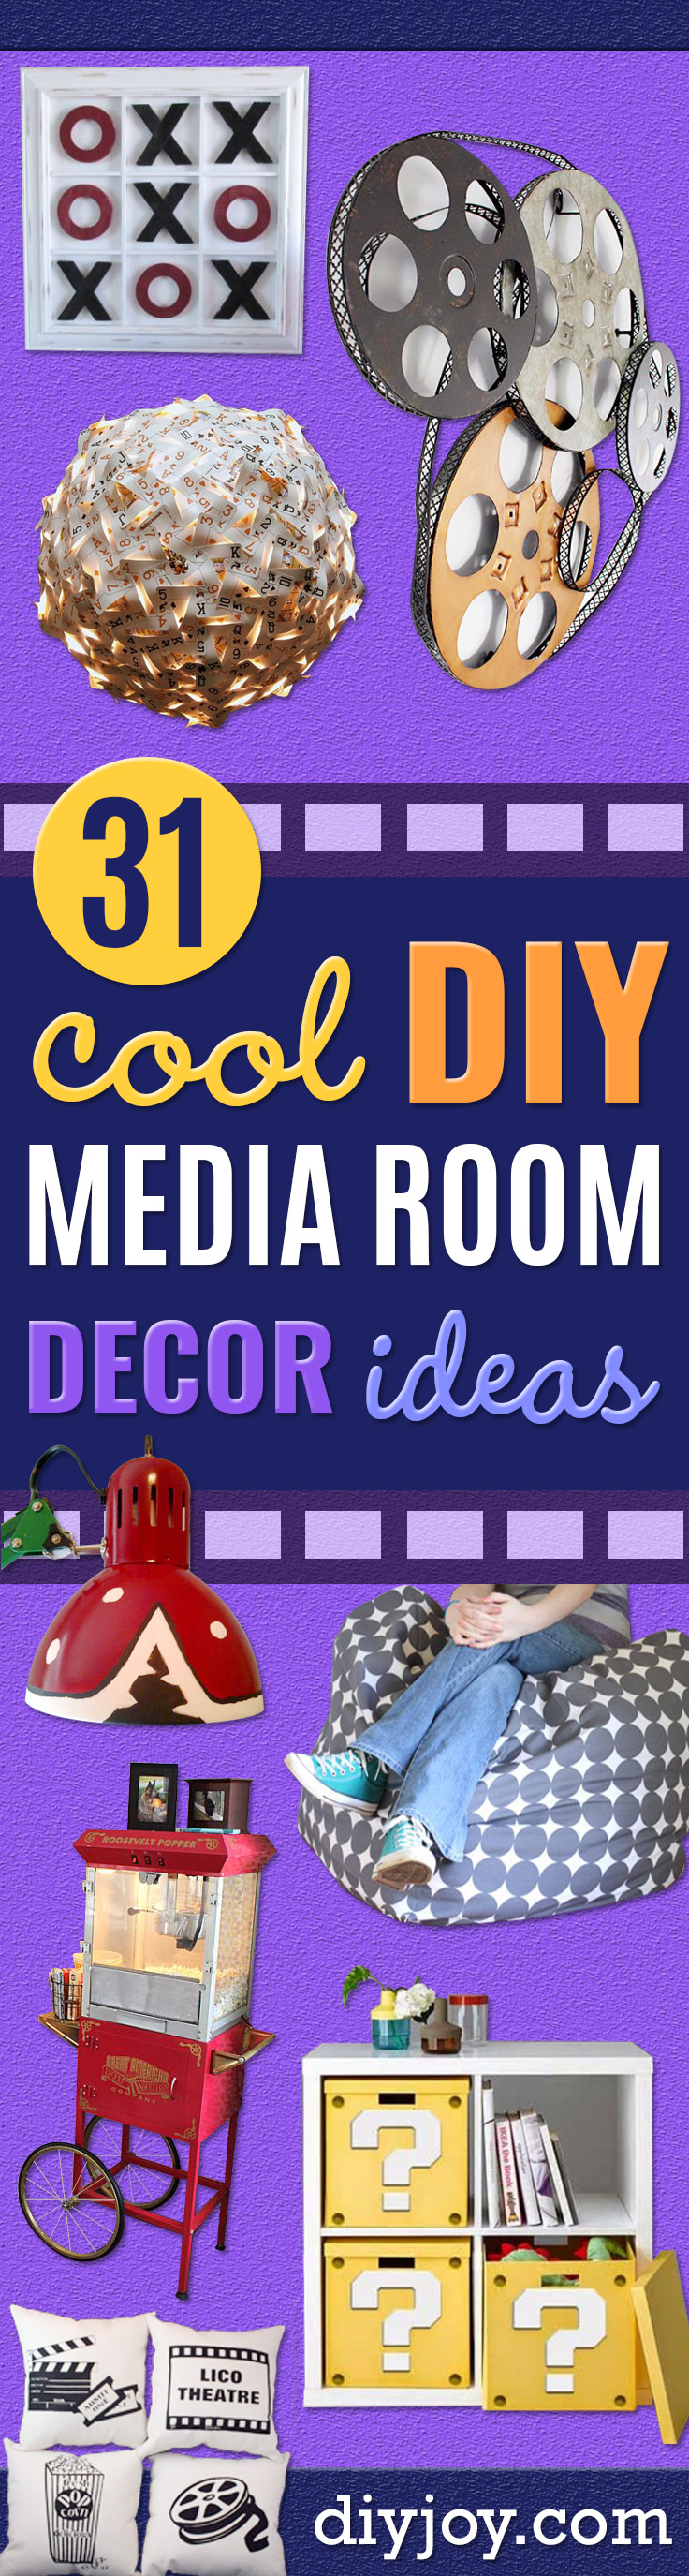 DIY Media Room Ideas - Do It Yourself TV Consoles, Wall Art, Sofas and Seating, Chairs, TV Stands, Remote Holders and Shelving Tutorials - Creative Furniture for Movie Rooms and Video Game Stations